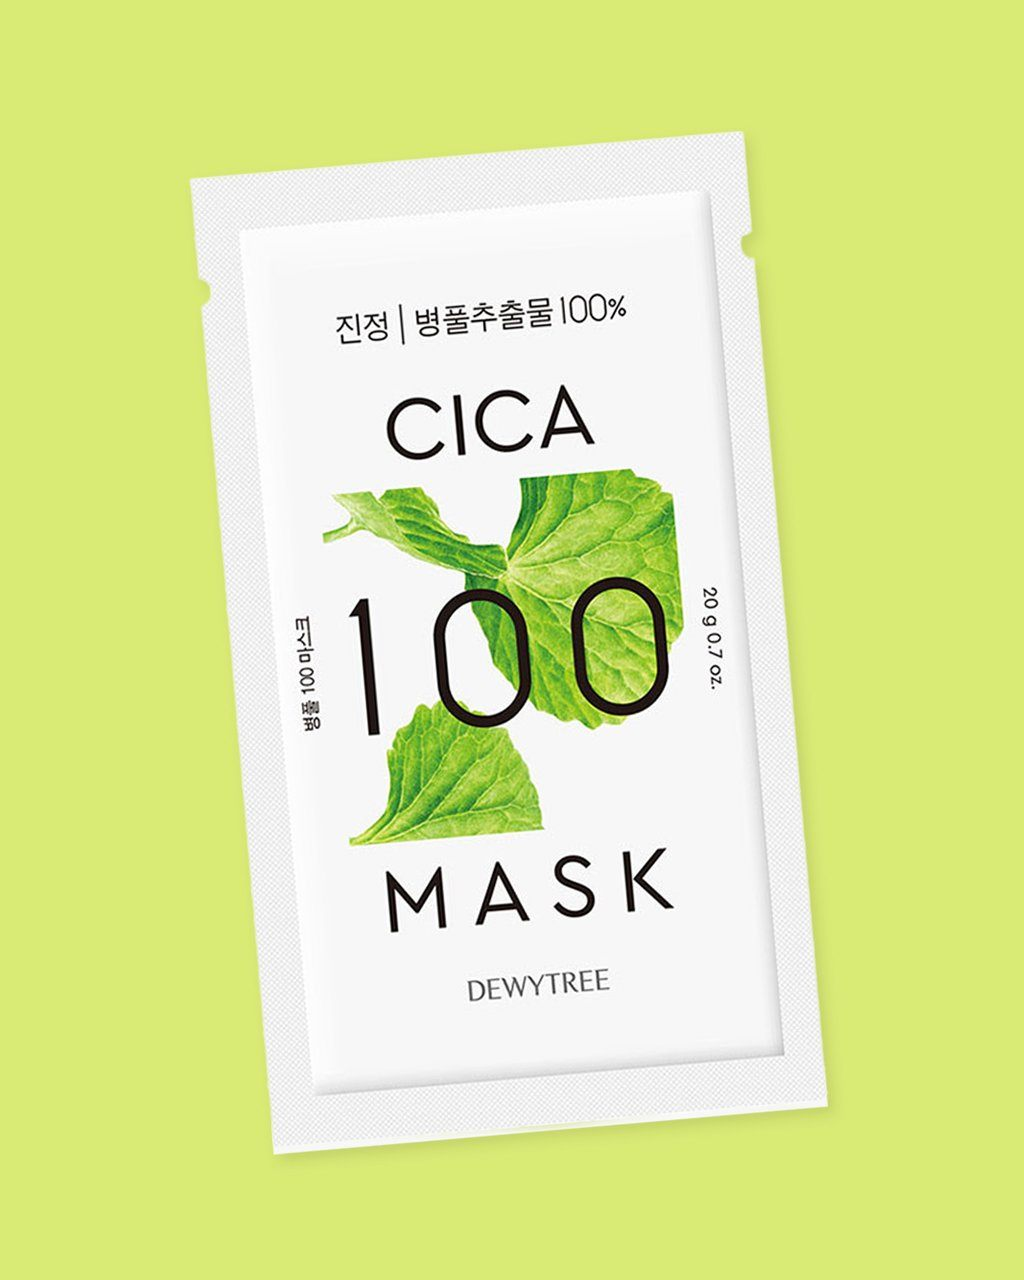 Dewytree Cica 100 Mask